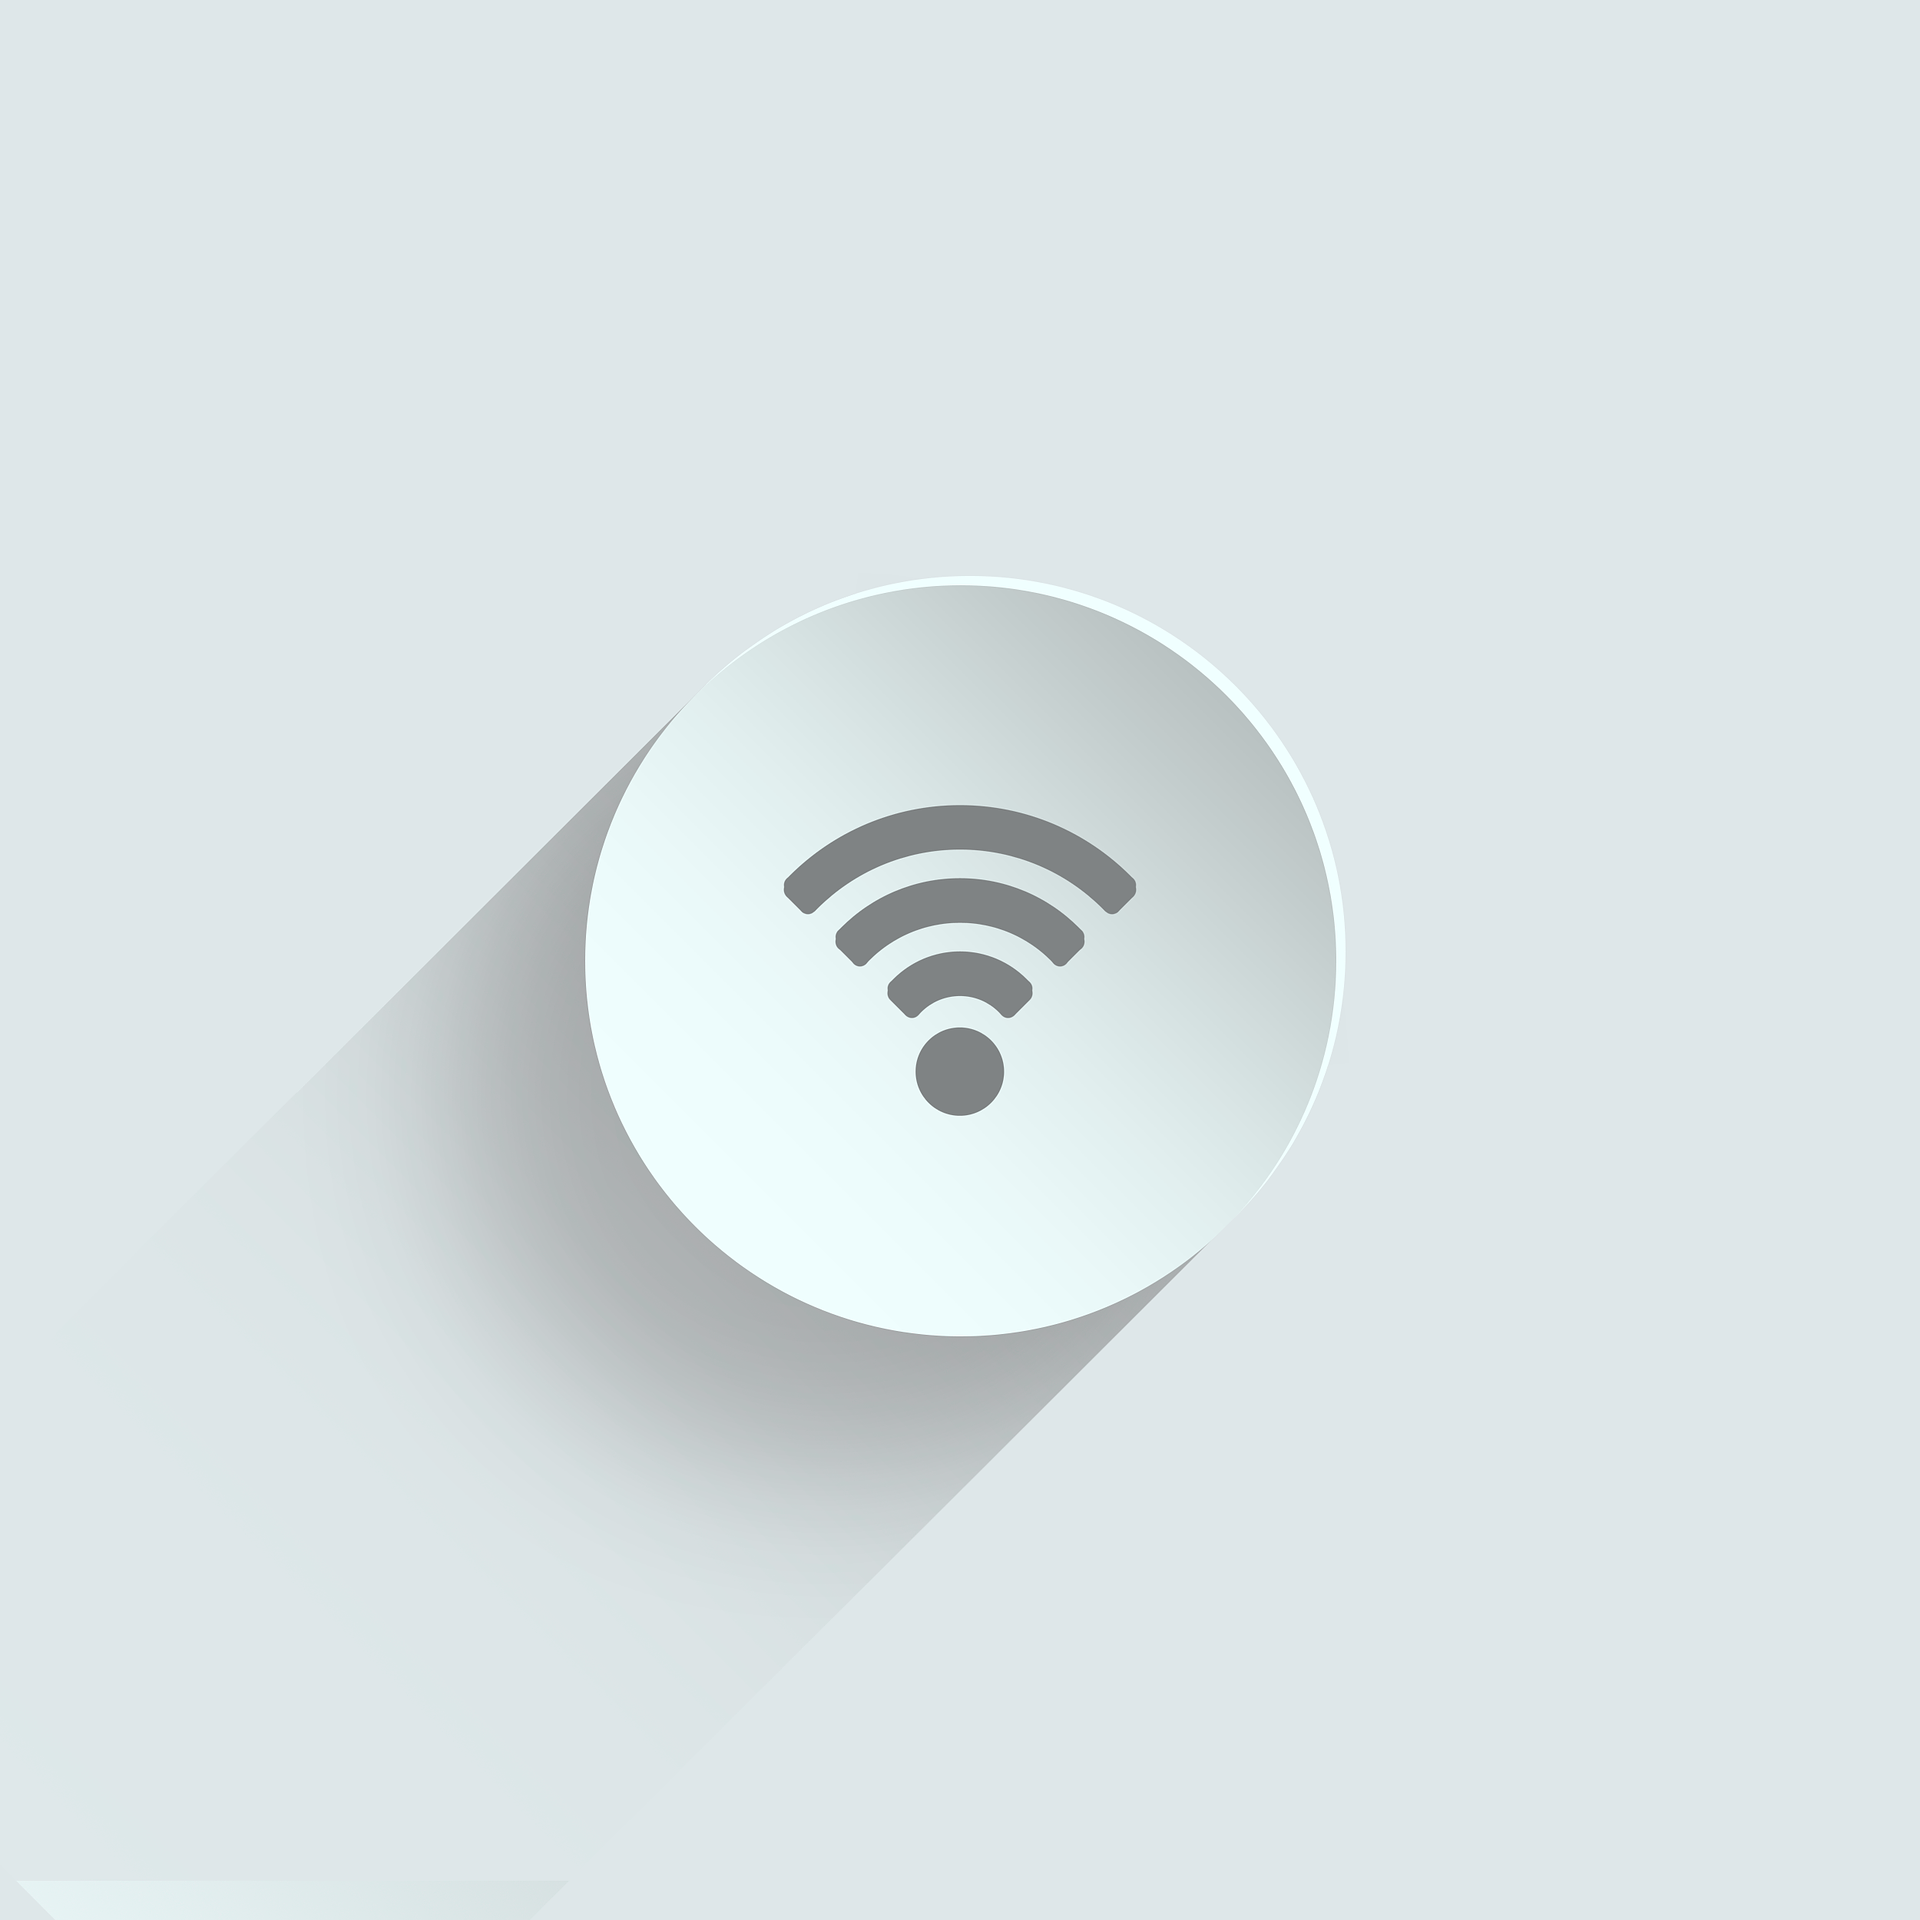 icon-1480926_1920.png